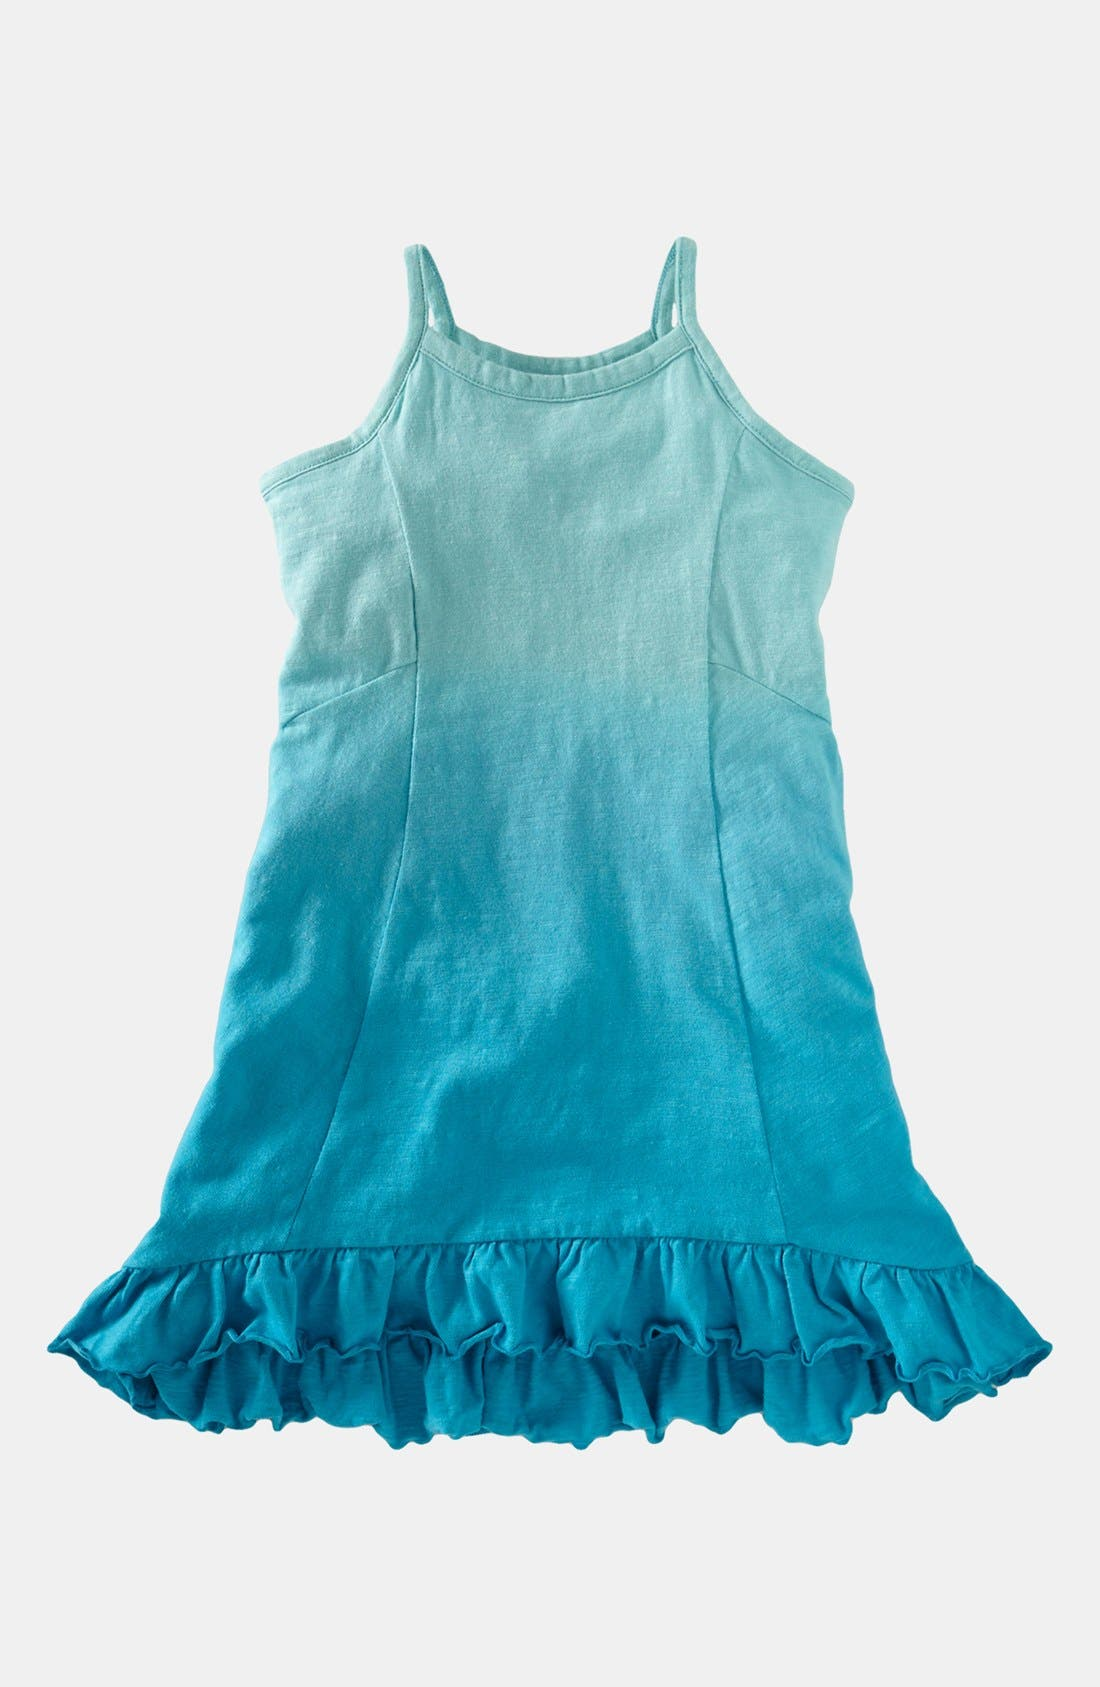 Main Image - Tea Collection 'Seafarer' Dress (Toddler)